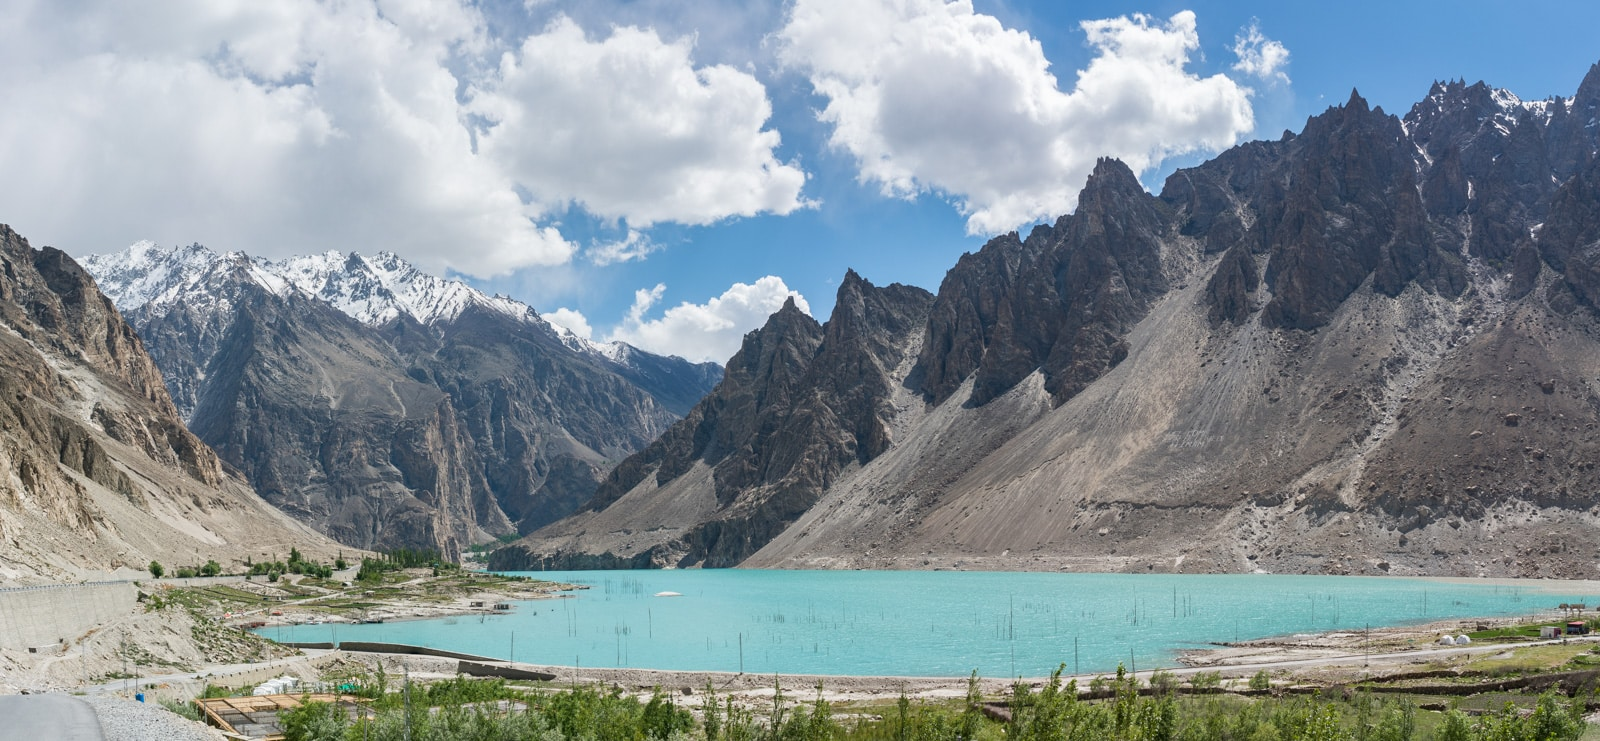 Homestay in Pakistan - Attabad Lake in Gilgit Baltistan - Lost With Purpose travel blog